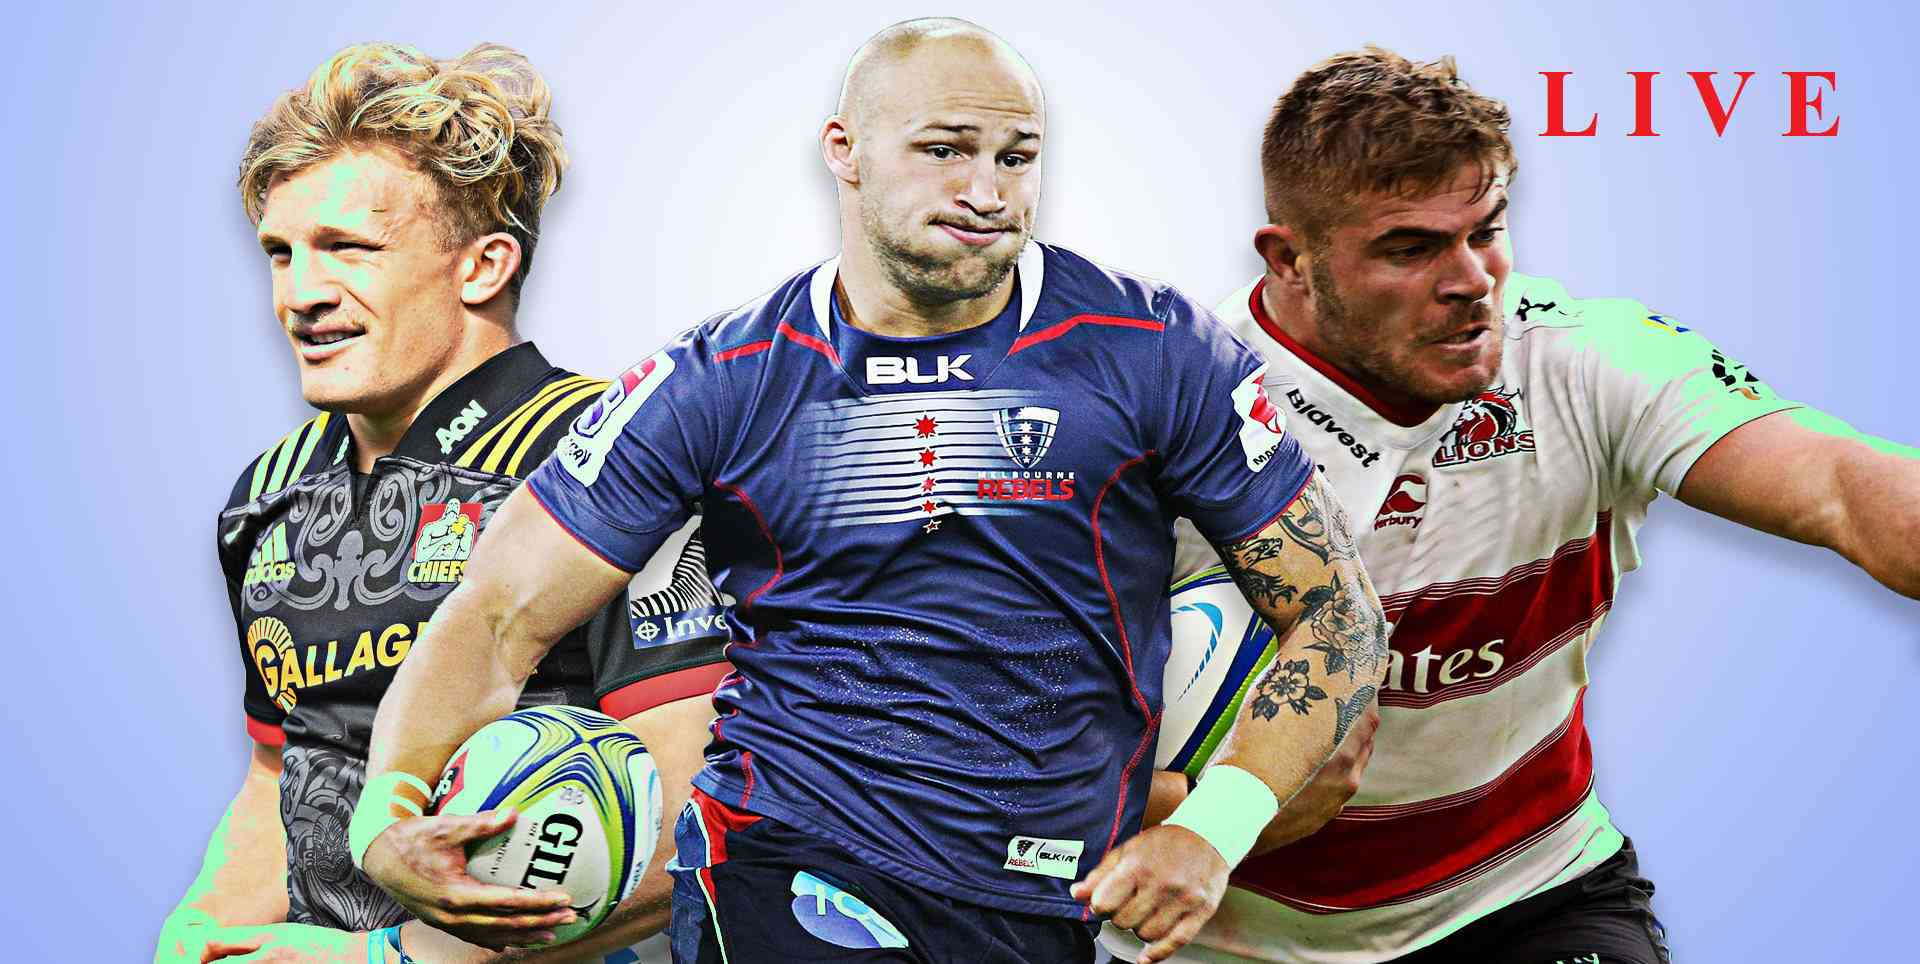 live-rebels-vs-jaguares-telecast